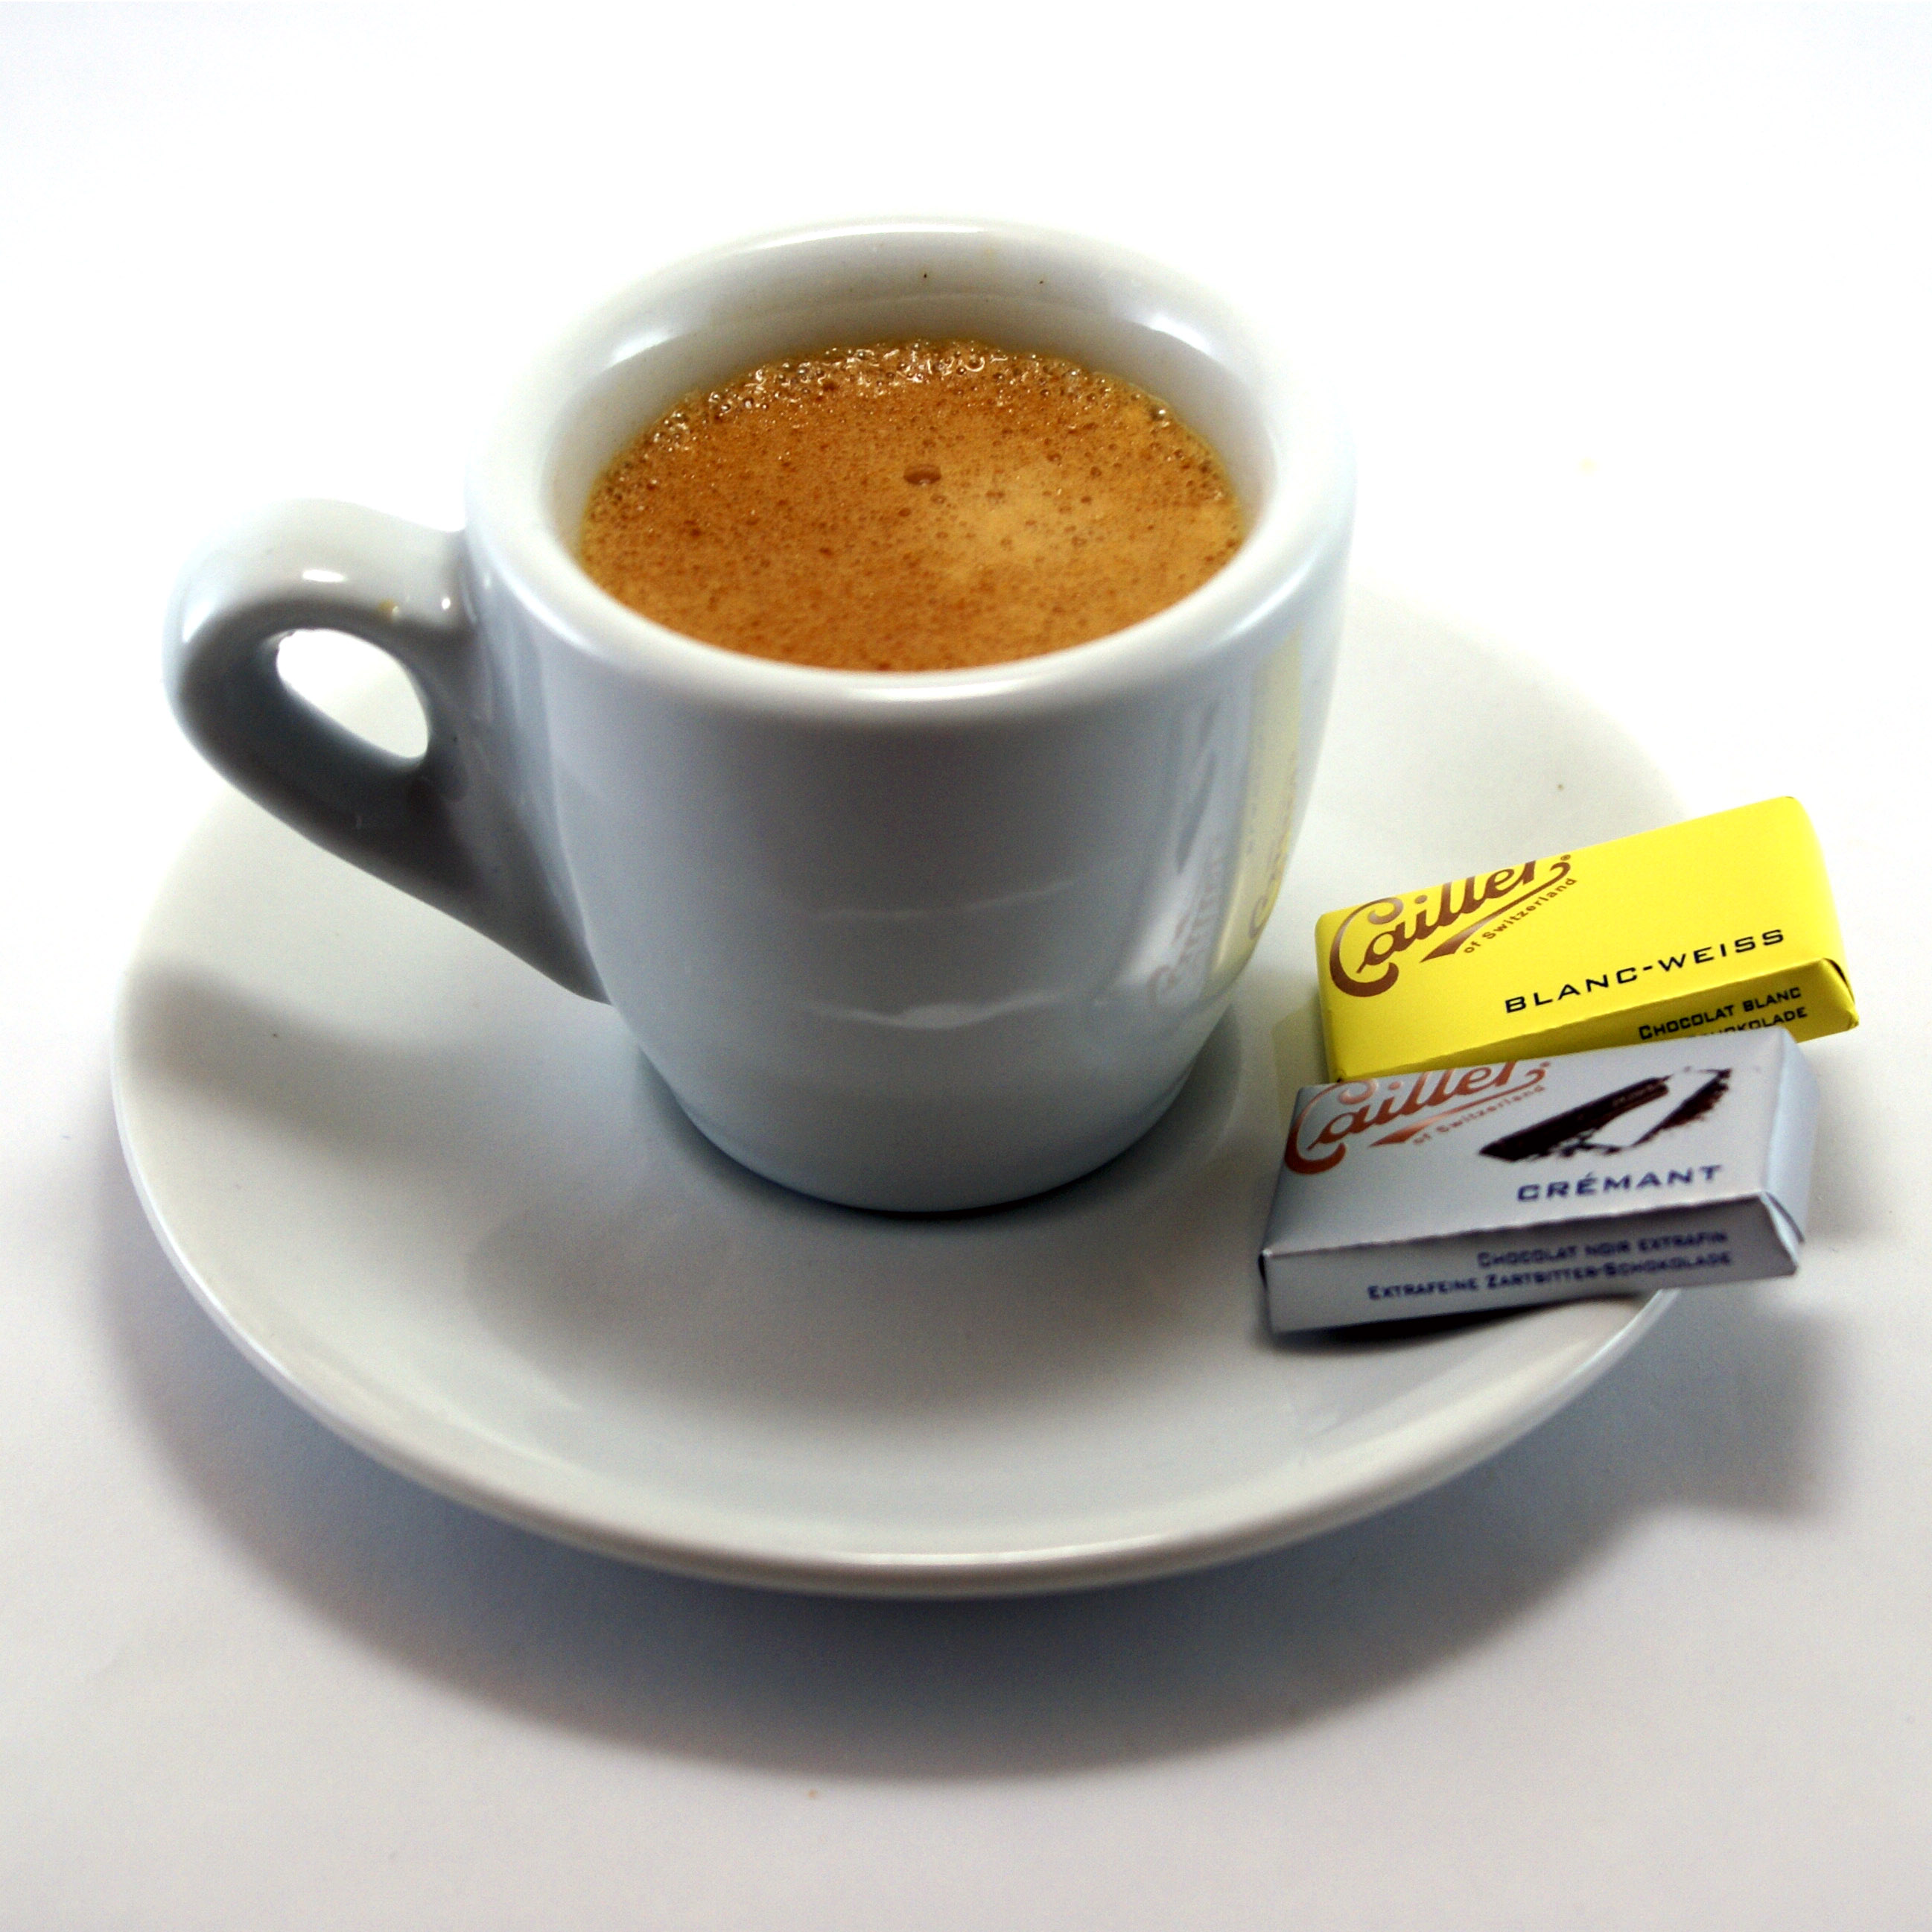 Espresso_and_napolitains.jpg